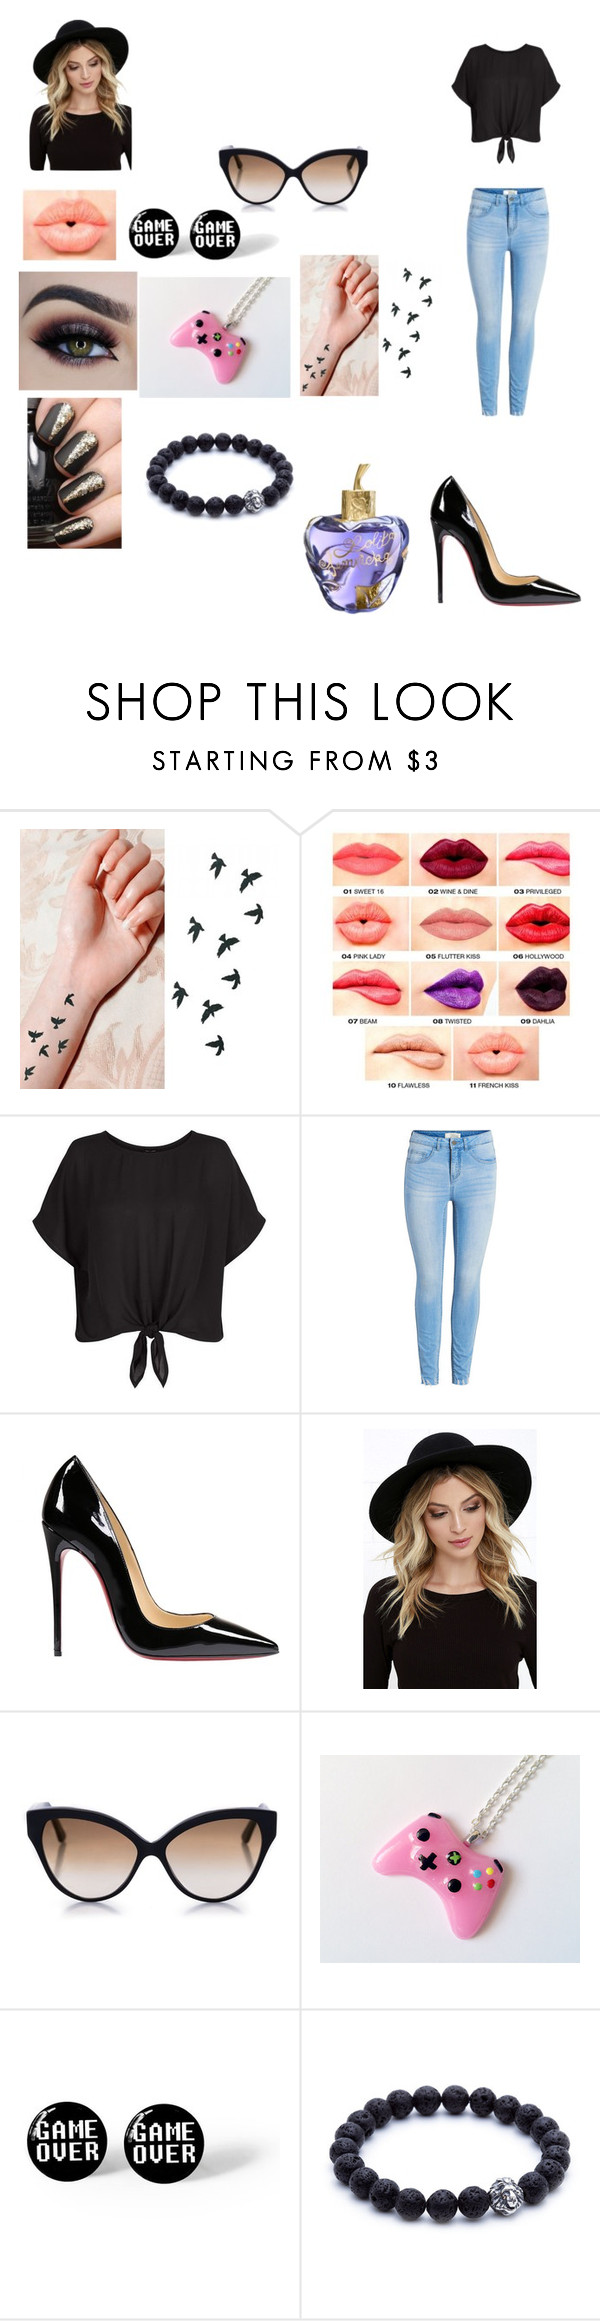 """""""Emma's outfit for day in Sao Paulo, Brazil"""" by onedirectionforever1297 on Polyvore featuring NYX, Christian Louboutin, RHYTHM, Cutler and Gross and Lolita Lempicka"""